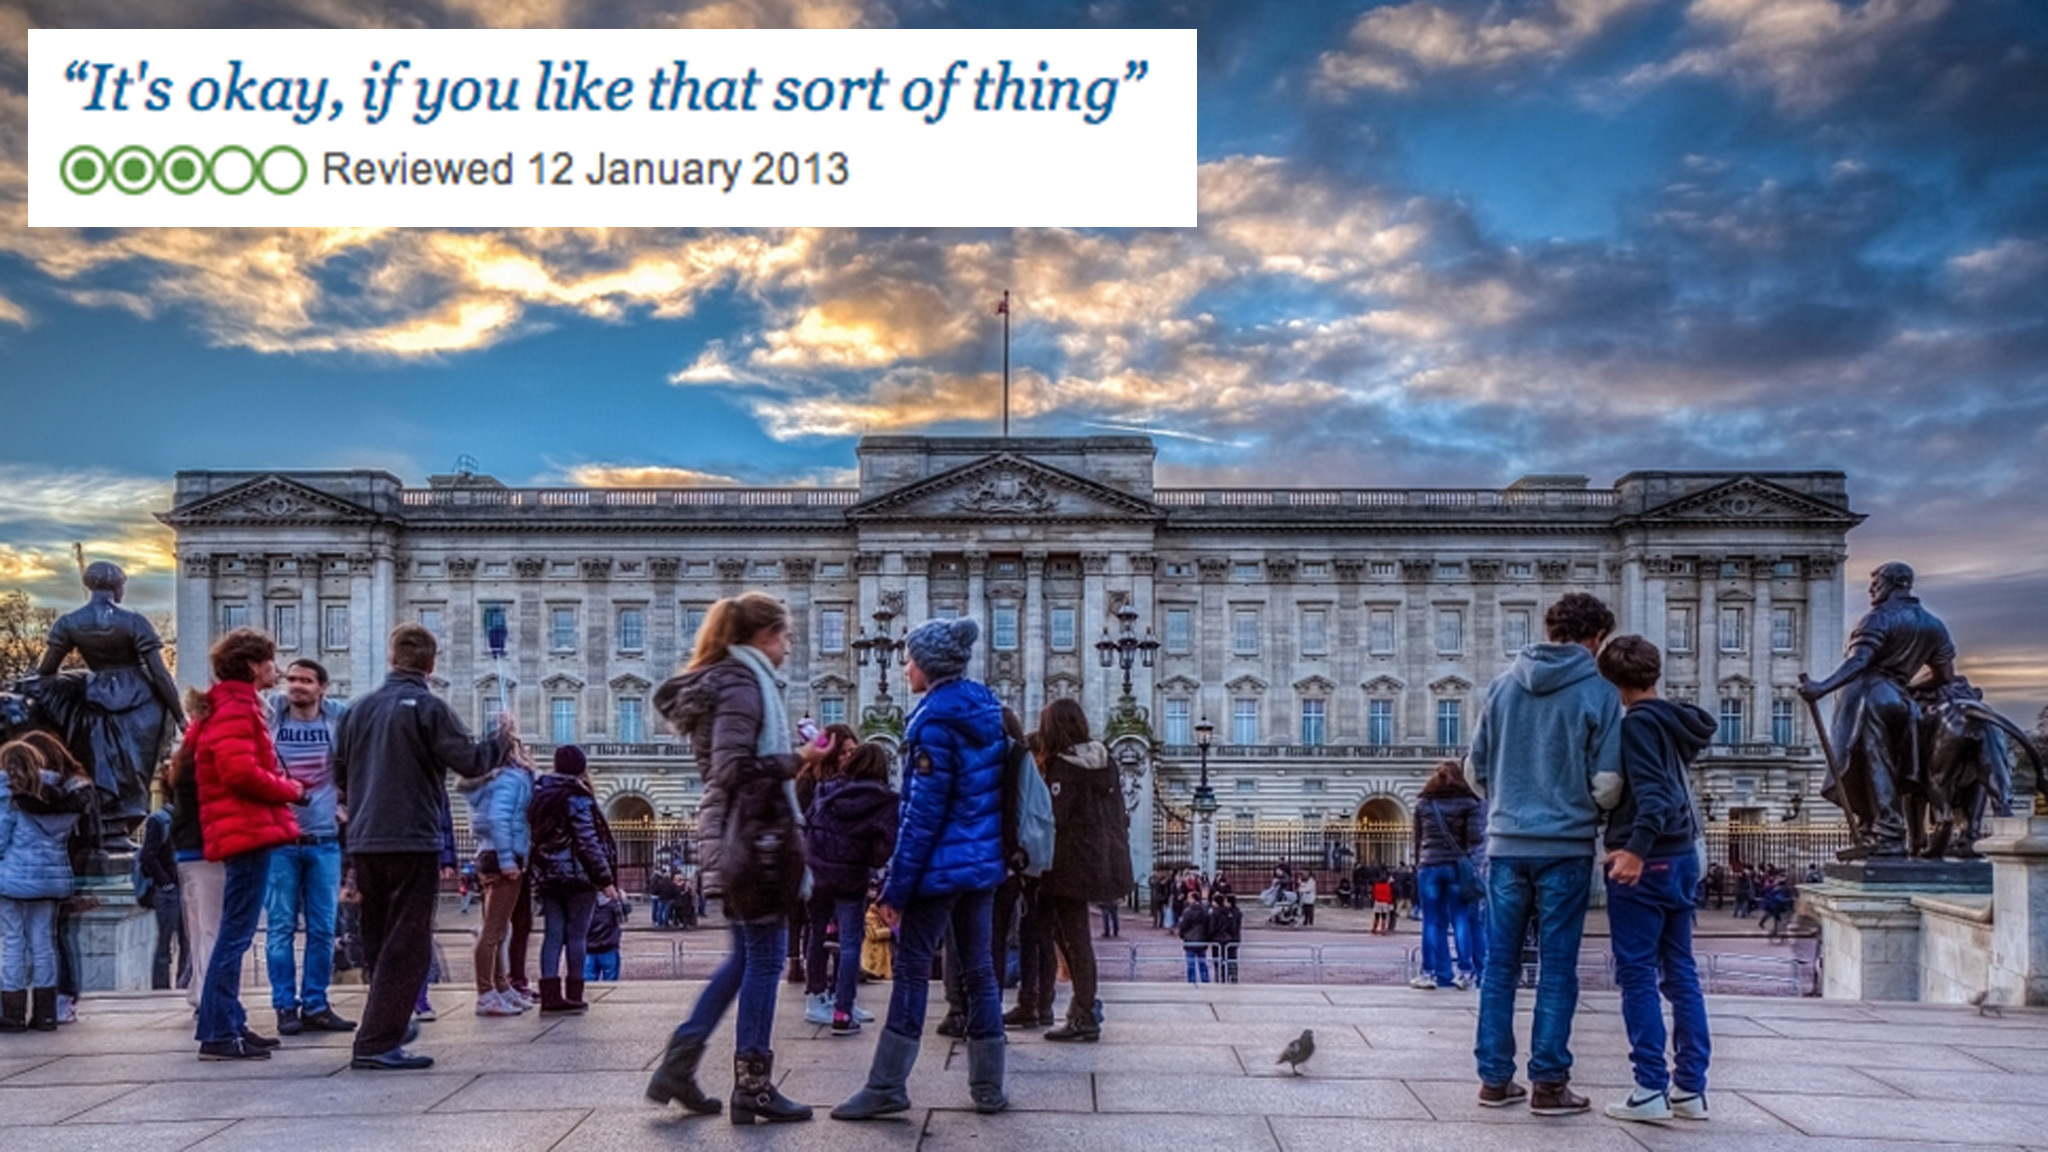 Buckingham Palace review